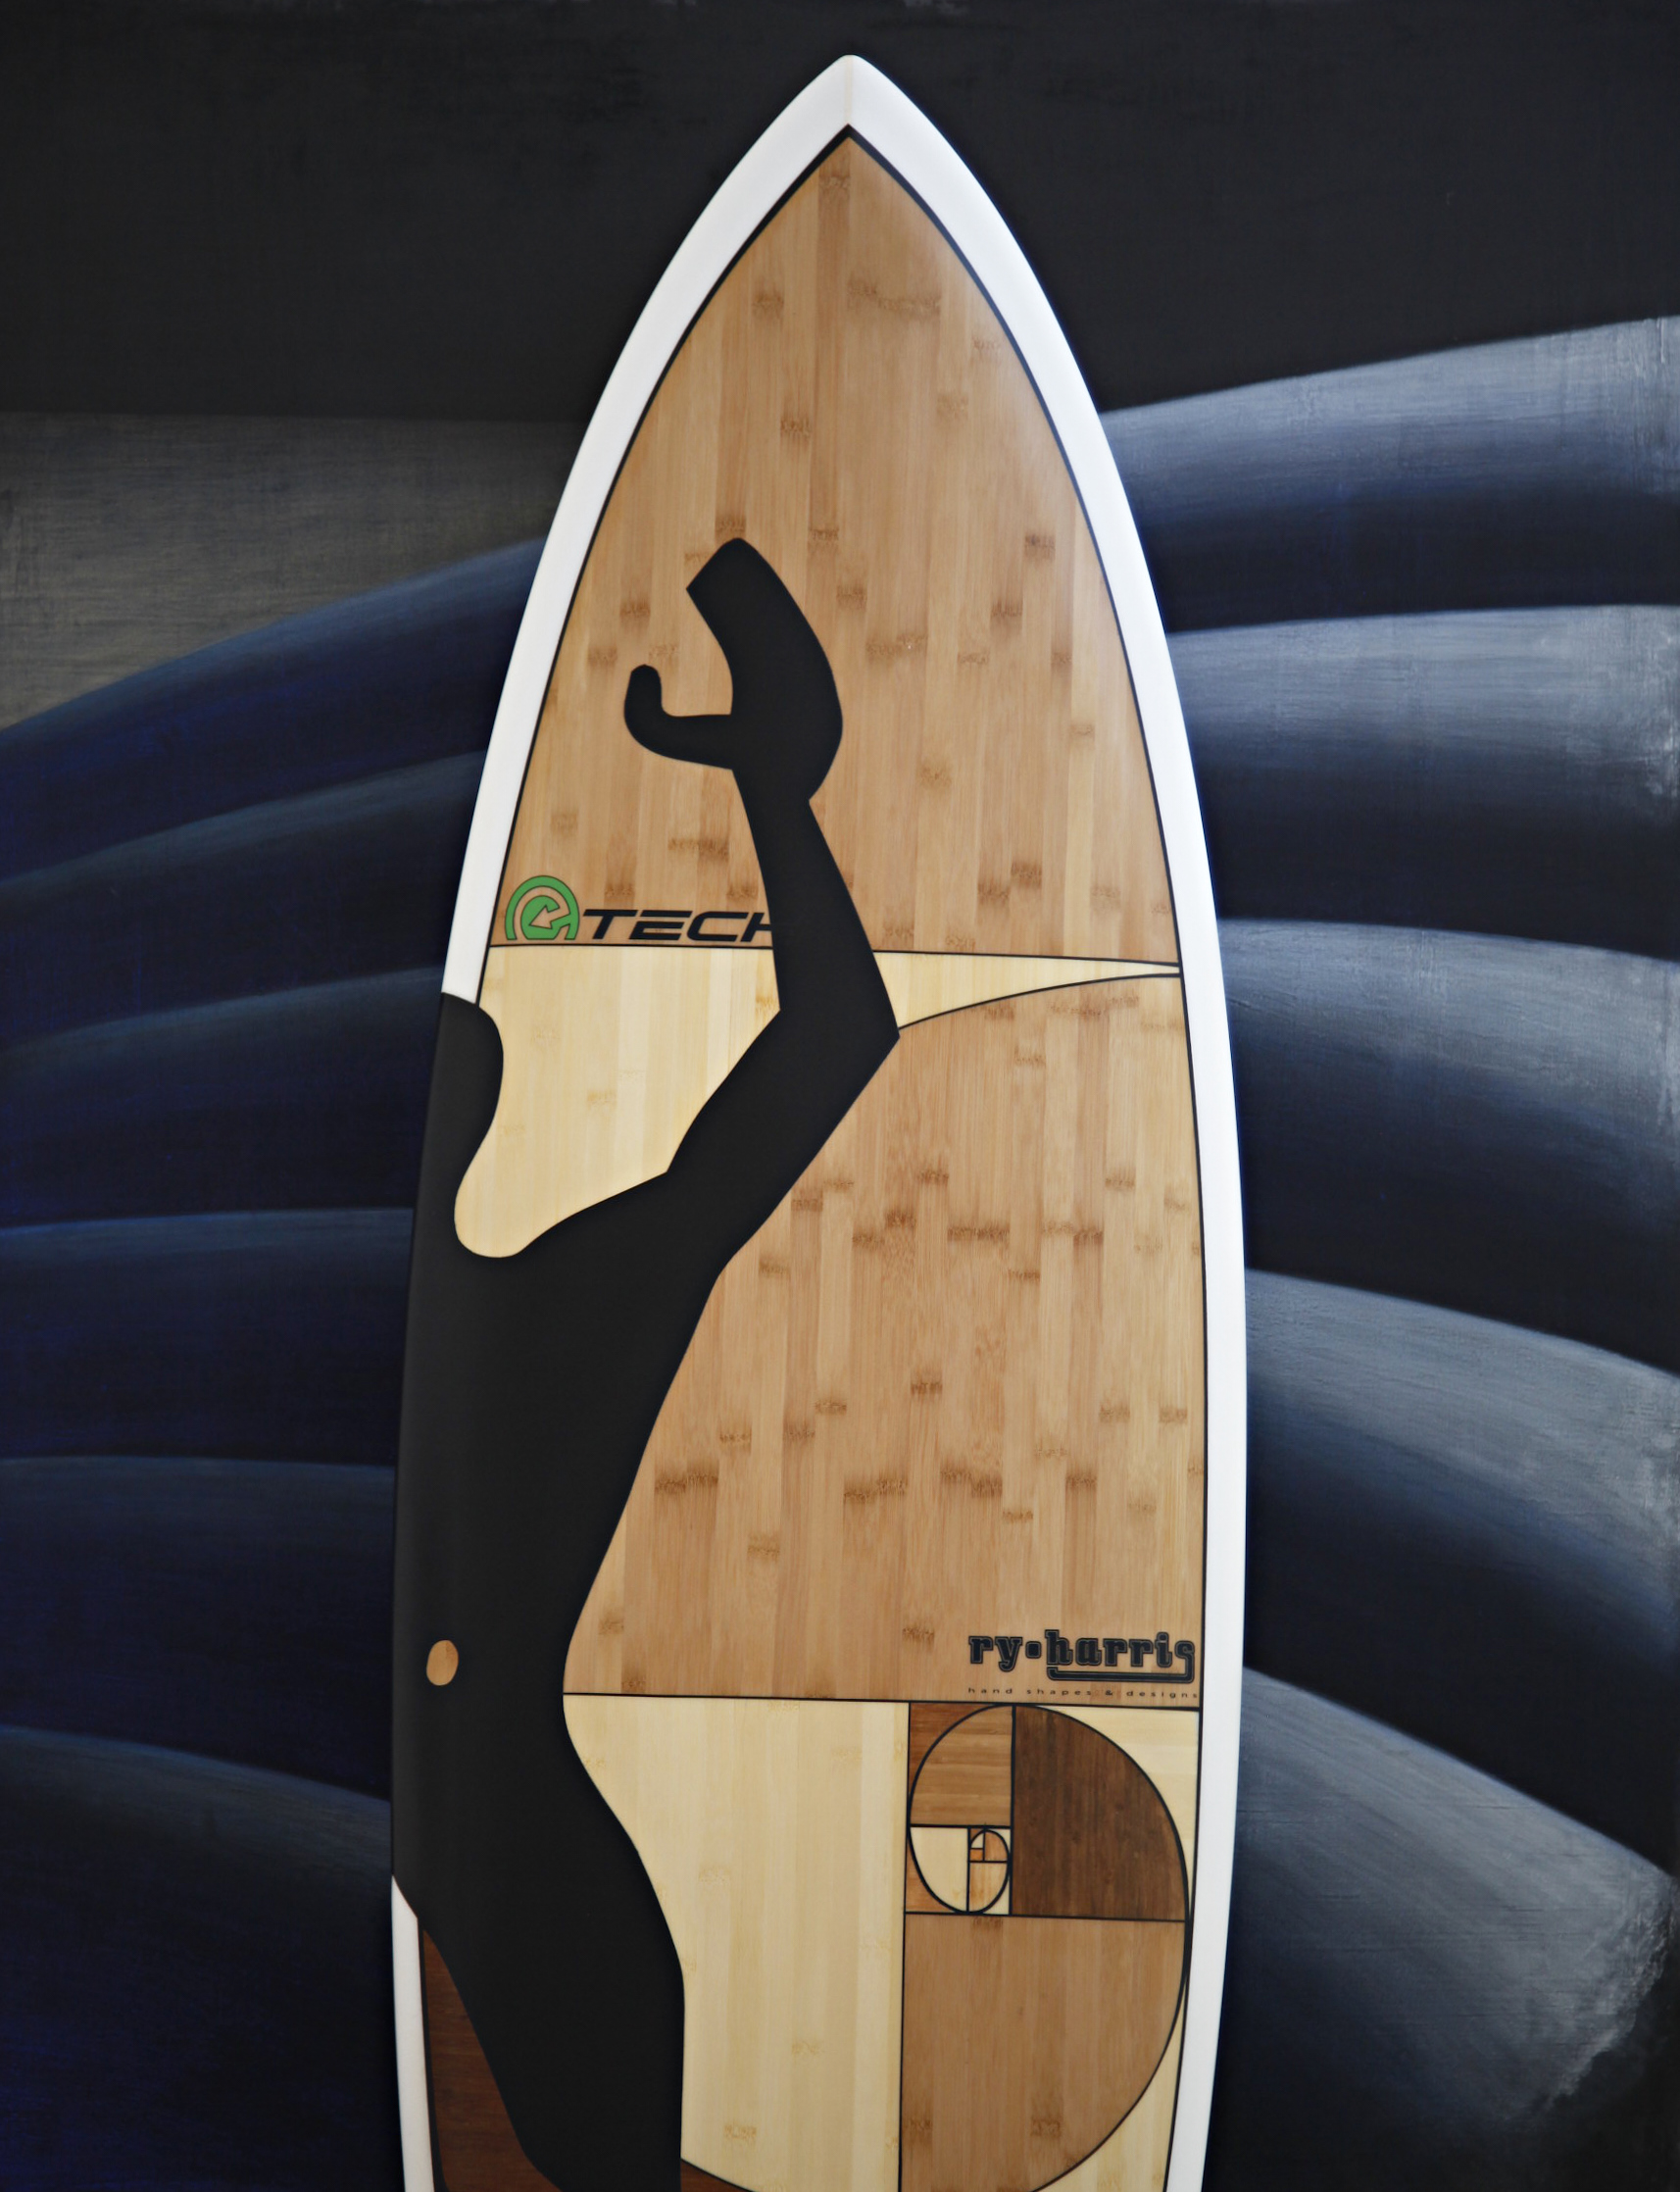 S.E.A.-Studio-Environmental-Architecture-David-Hertz-FAIA-A+D-Museum-Surfboard-Venice-Beach-California-sustainable-regenerative-restorative-green-design-Le-Corbusier-Modular-Vitruvian-Man-graphic-shortboard-recycled-bamboo-Super-Sap-biobased-custom-3.jpg